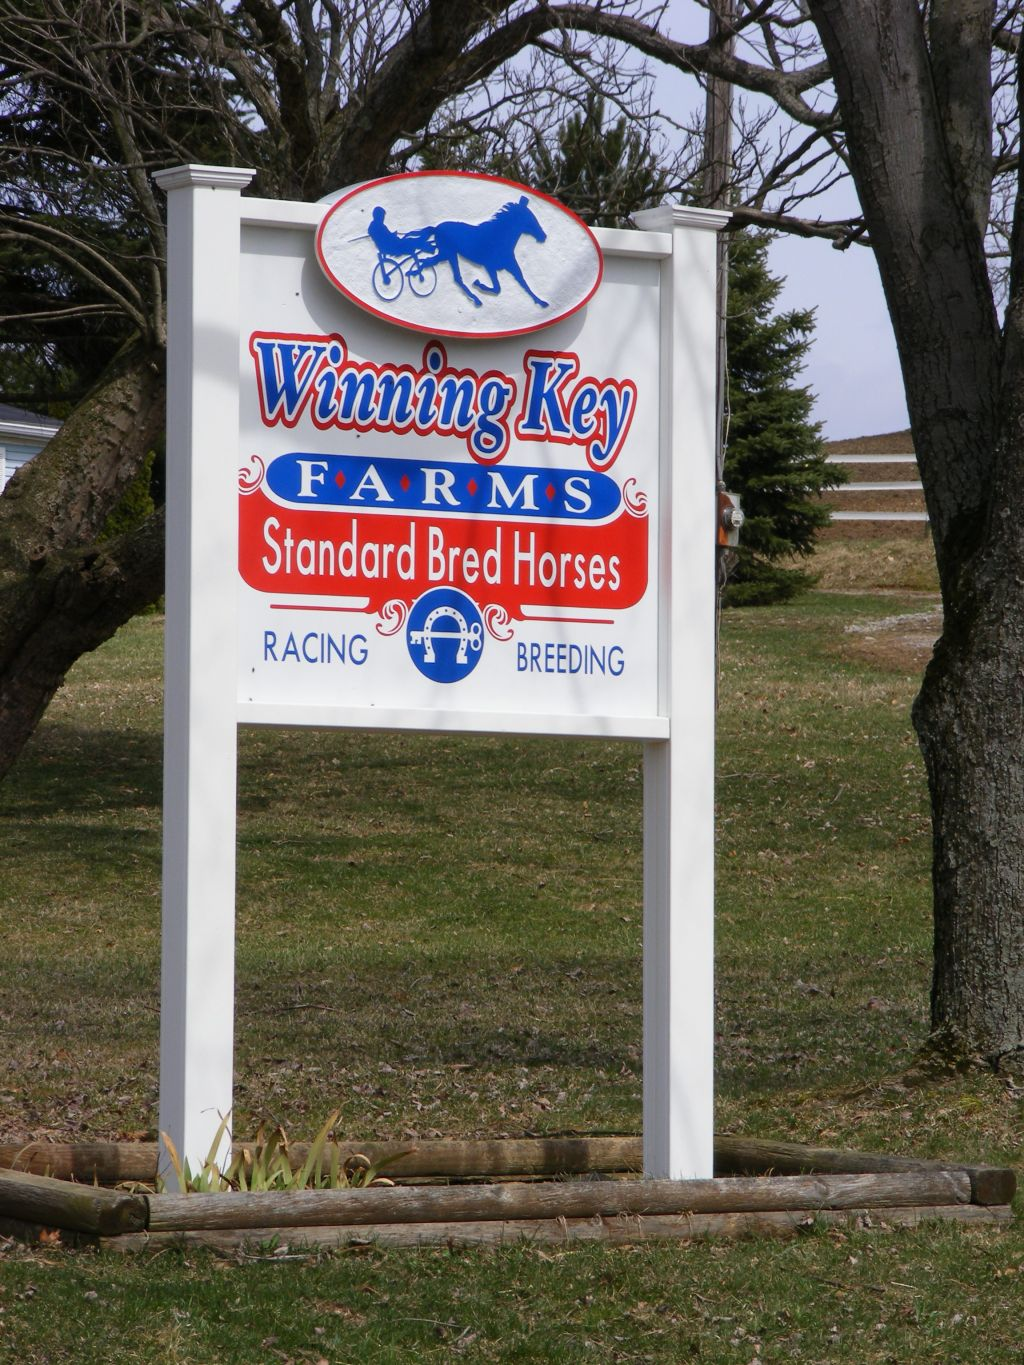 Winning Key Farm